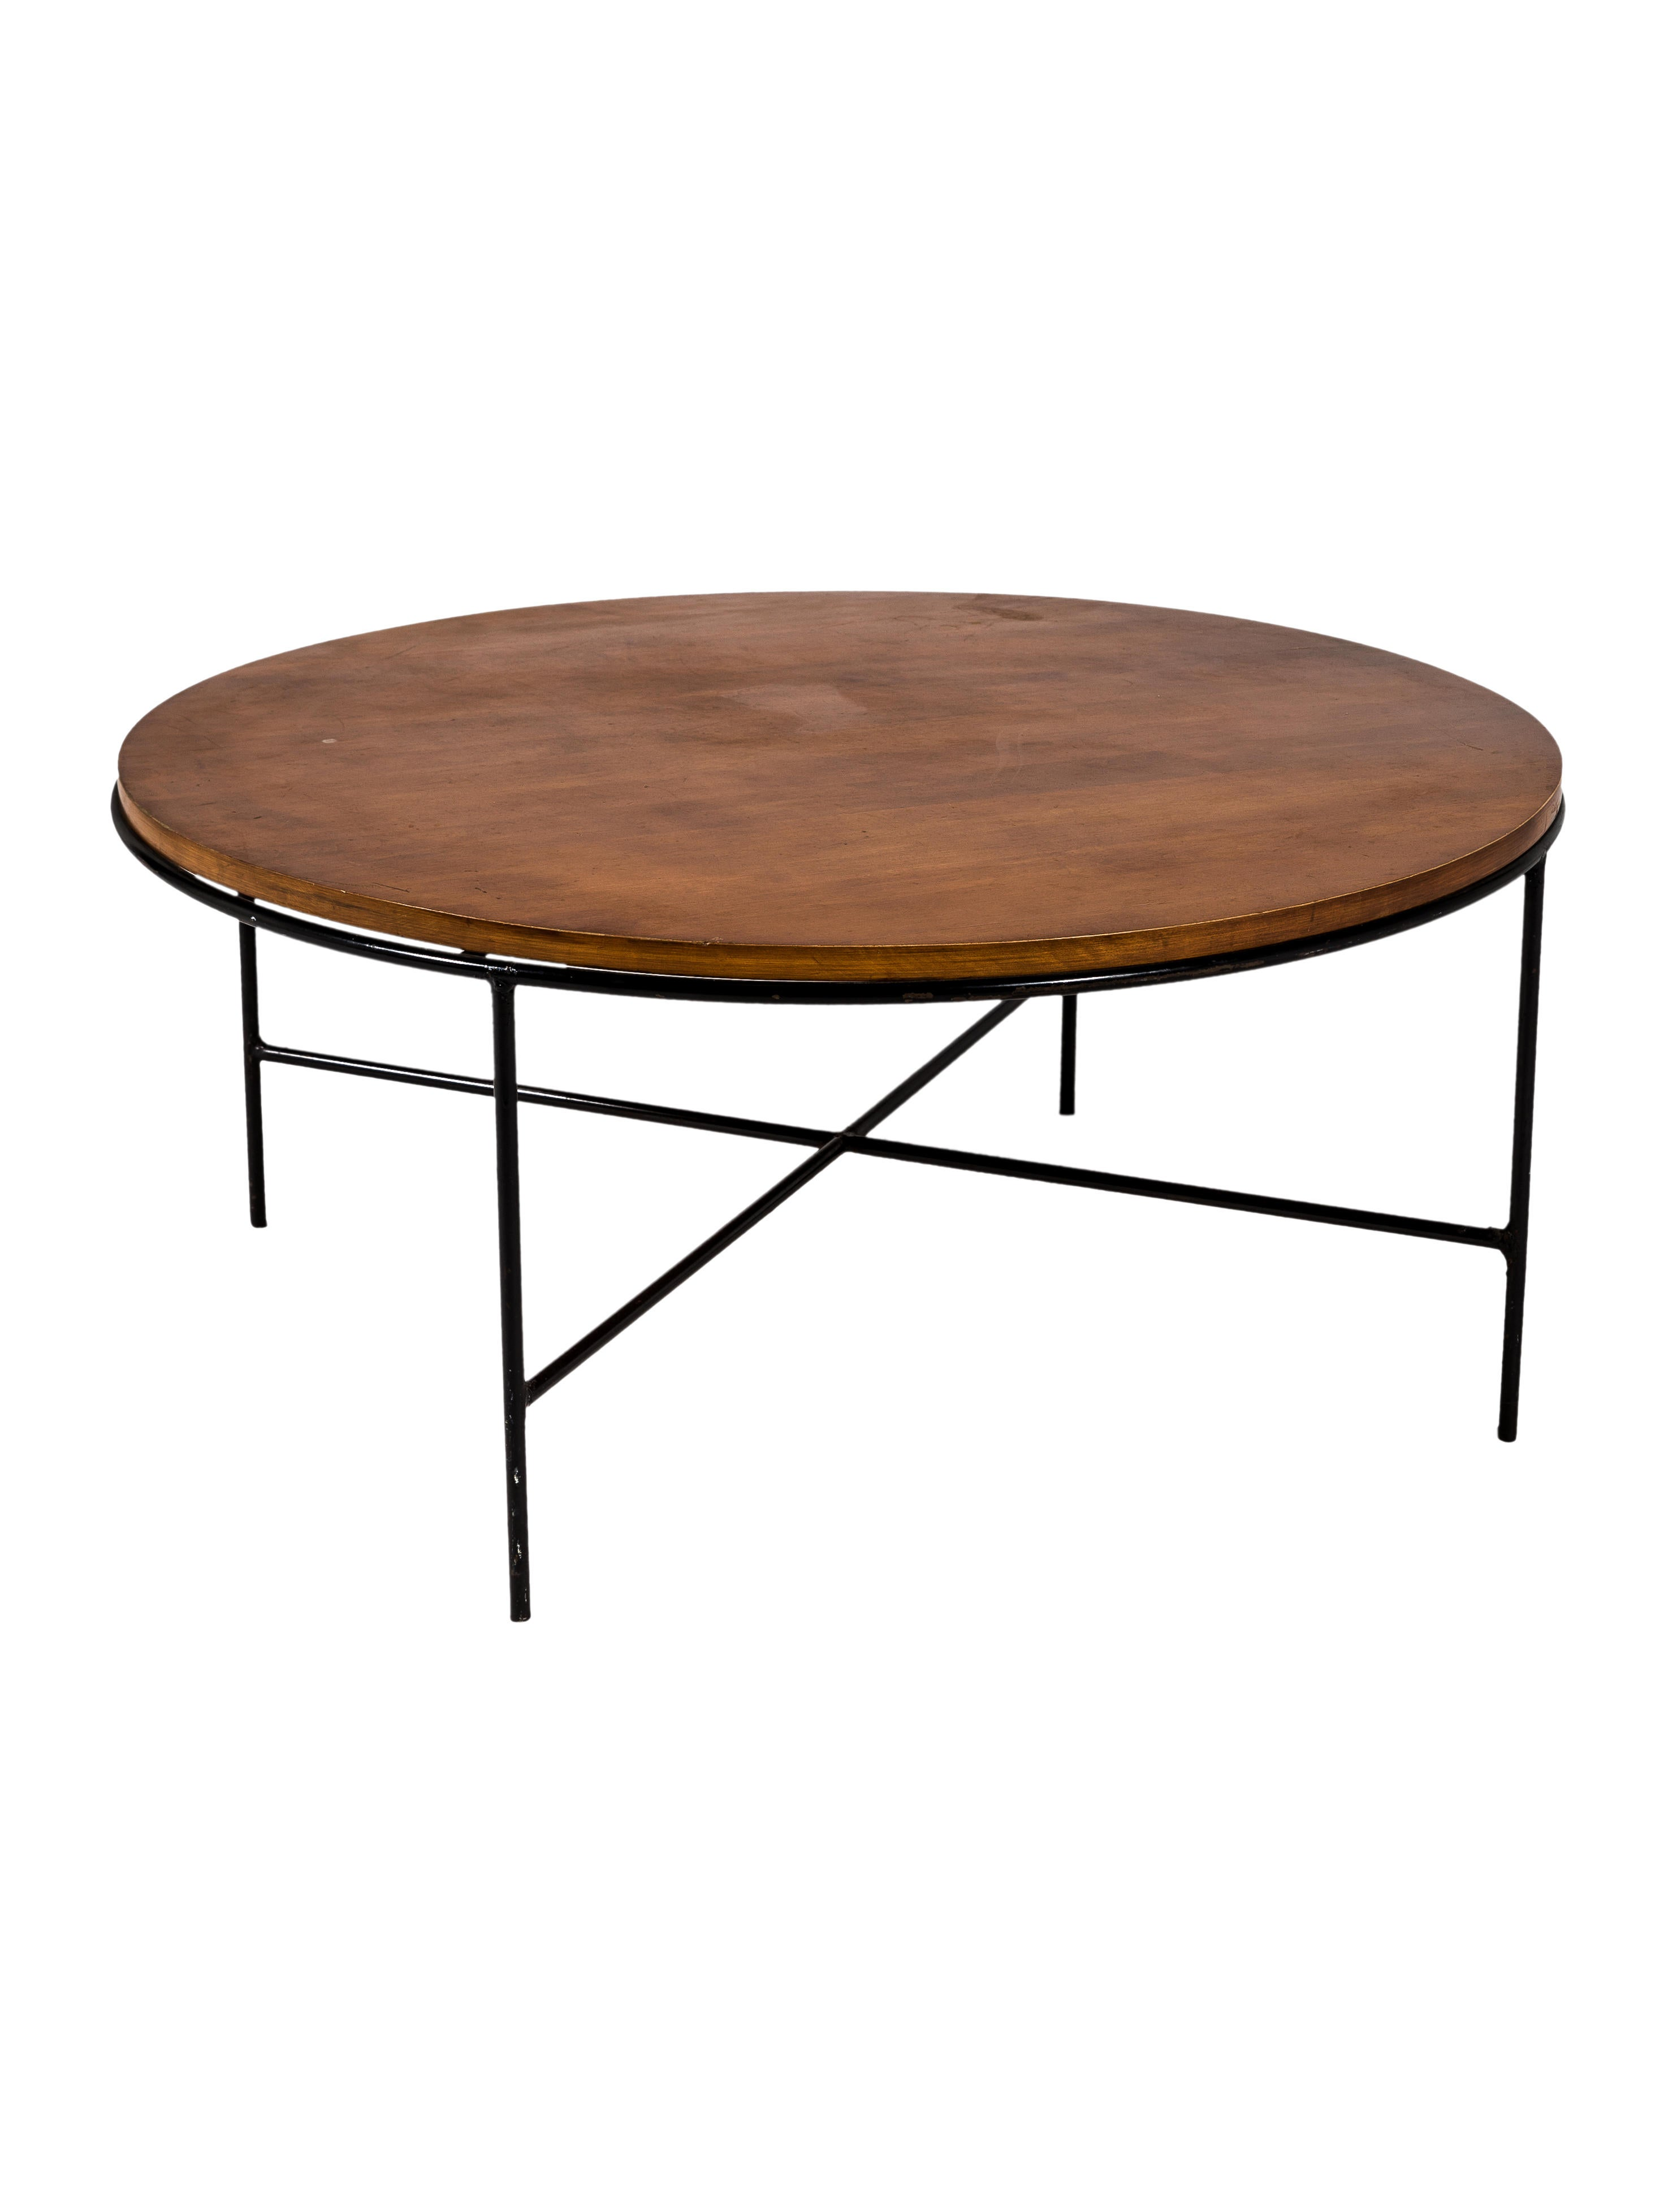 Mid Century Modern Coffee Table Furniture Coffe20074 The Realreal